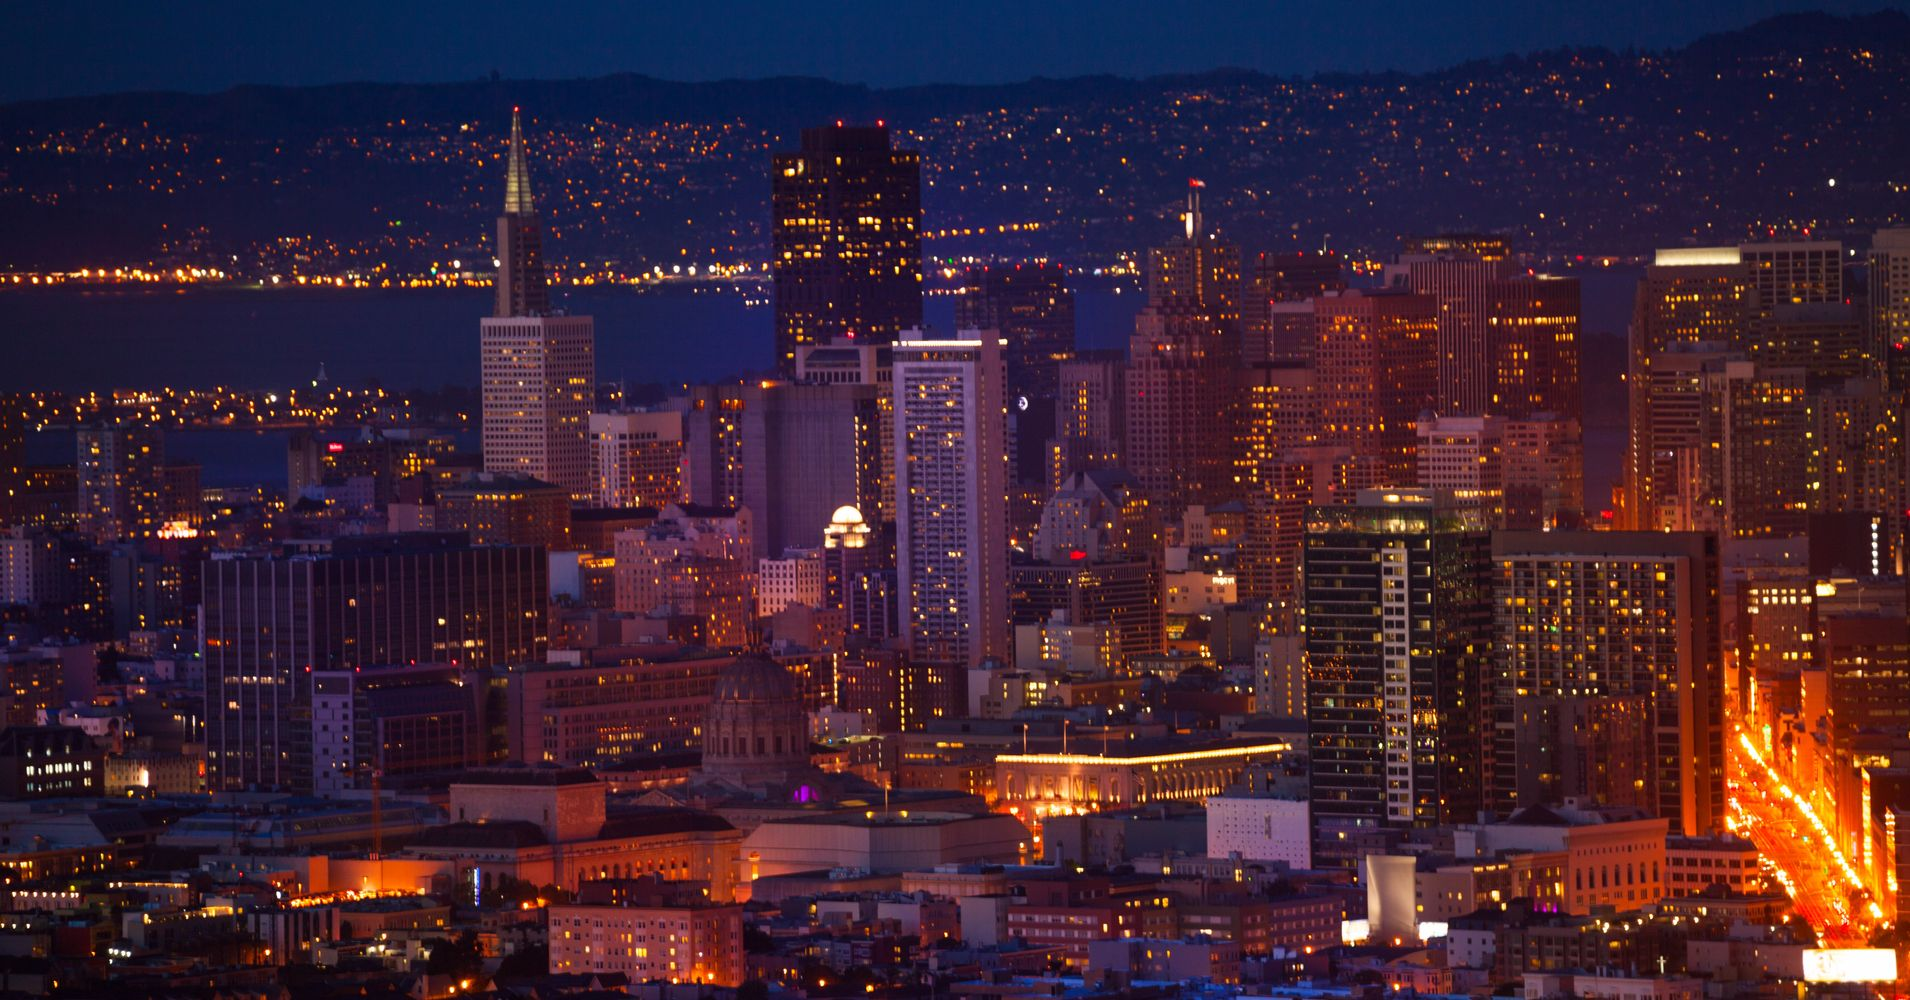 Where to find sex in san francisco